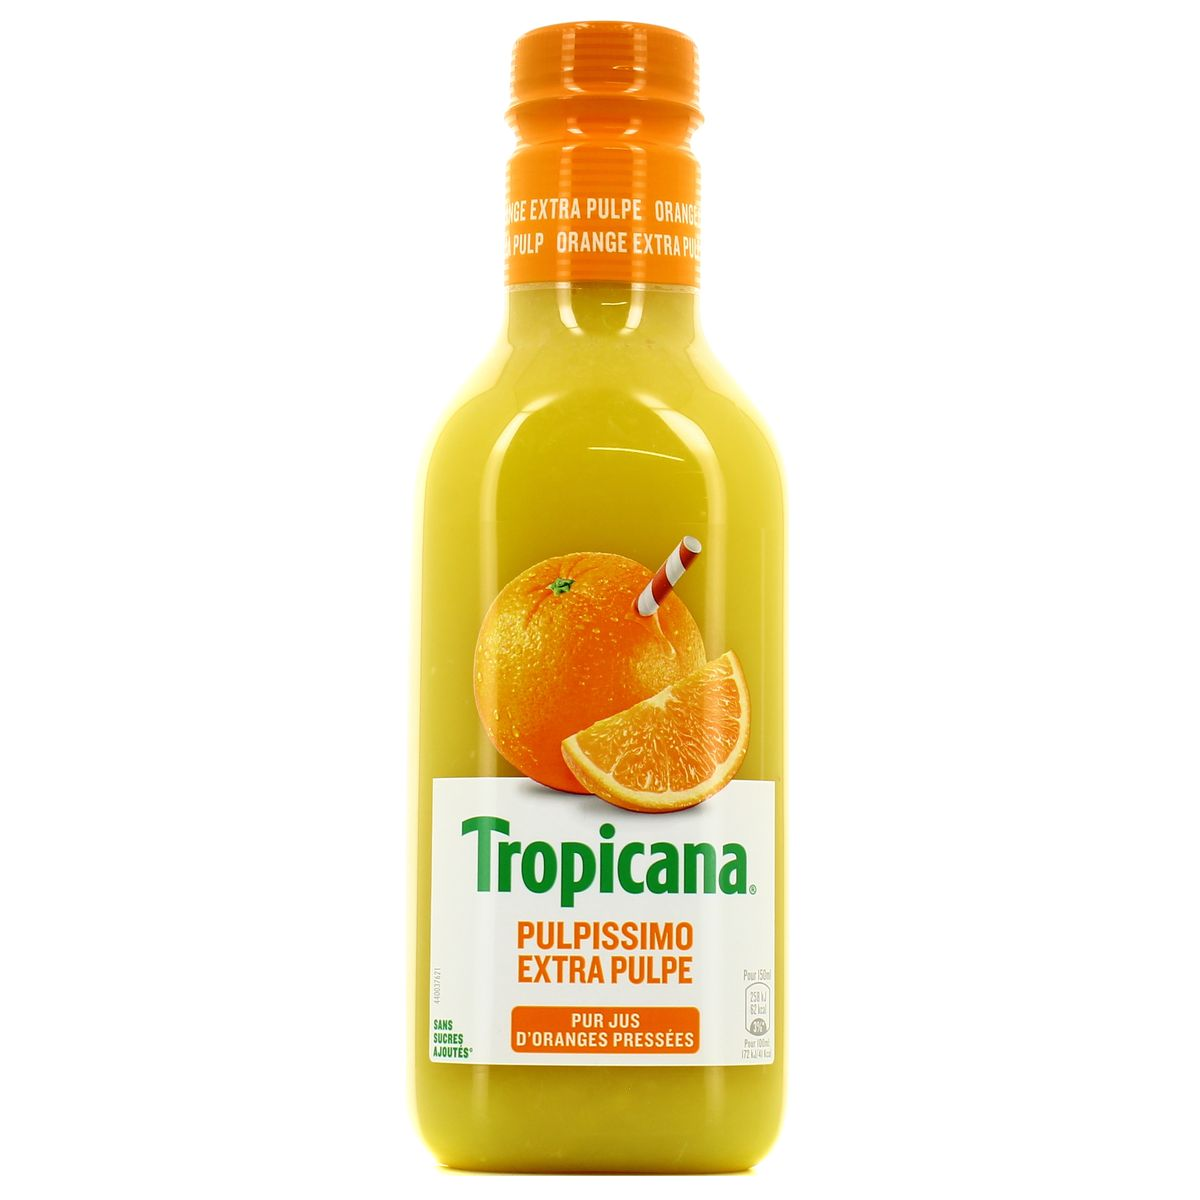 Jus d'orange pulpissimo frais, Tropicana (900 ml)